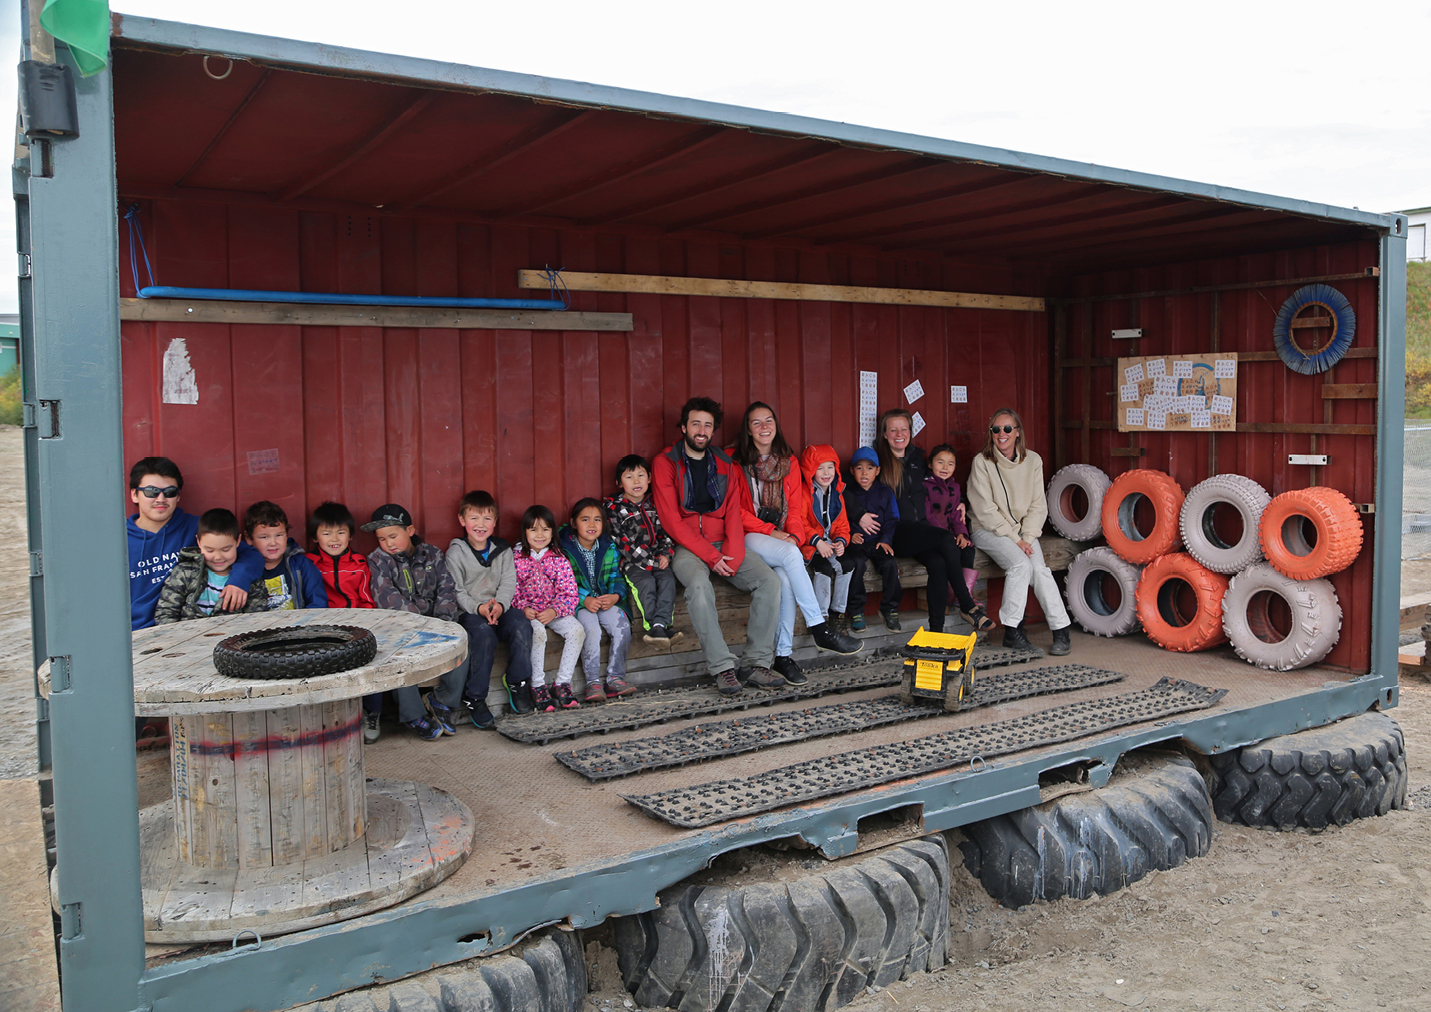 Group photo with students in the shelter